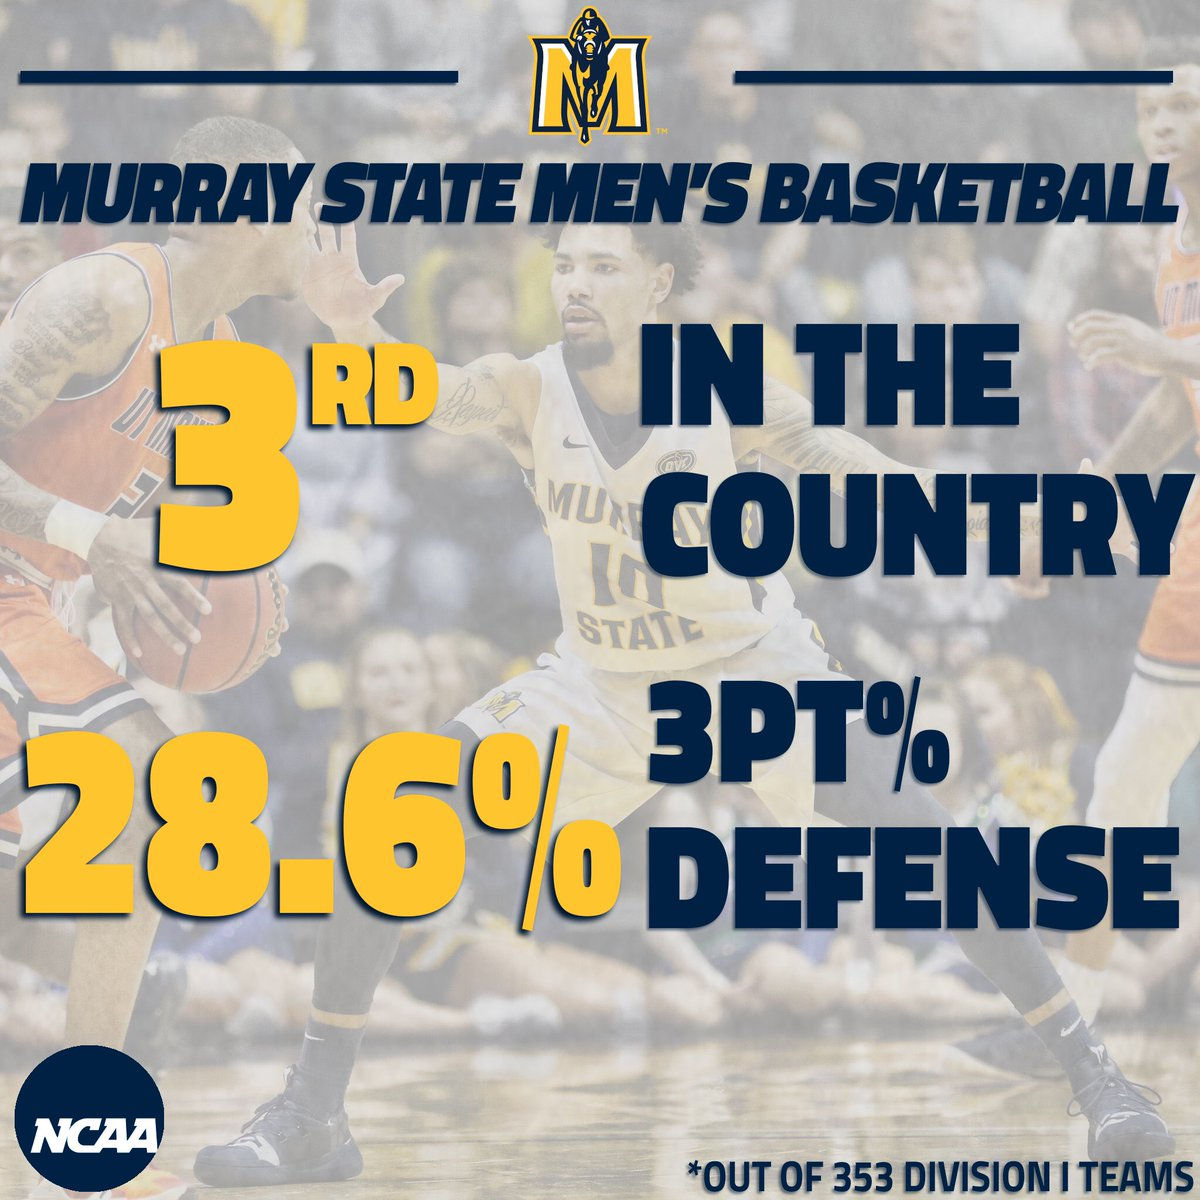 Out of the 353 D-1 teams, the Racers ranked third in 3-point percentage defense! #RacerTradition